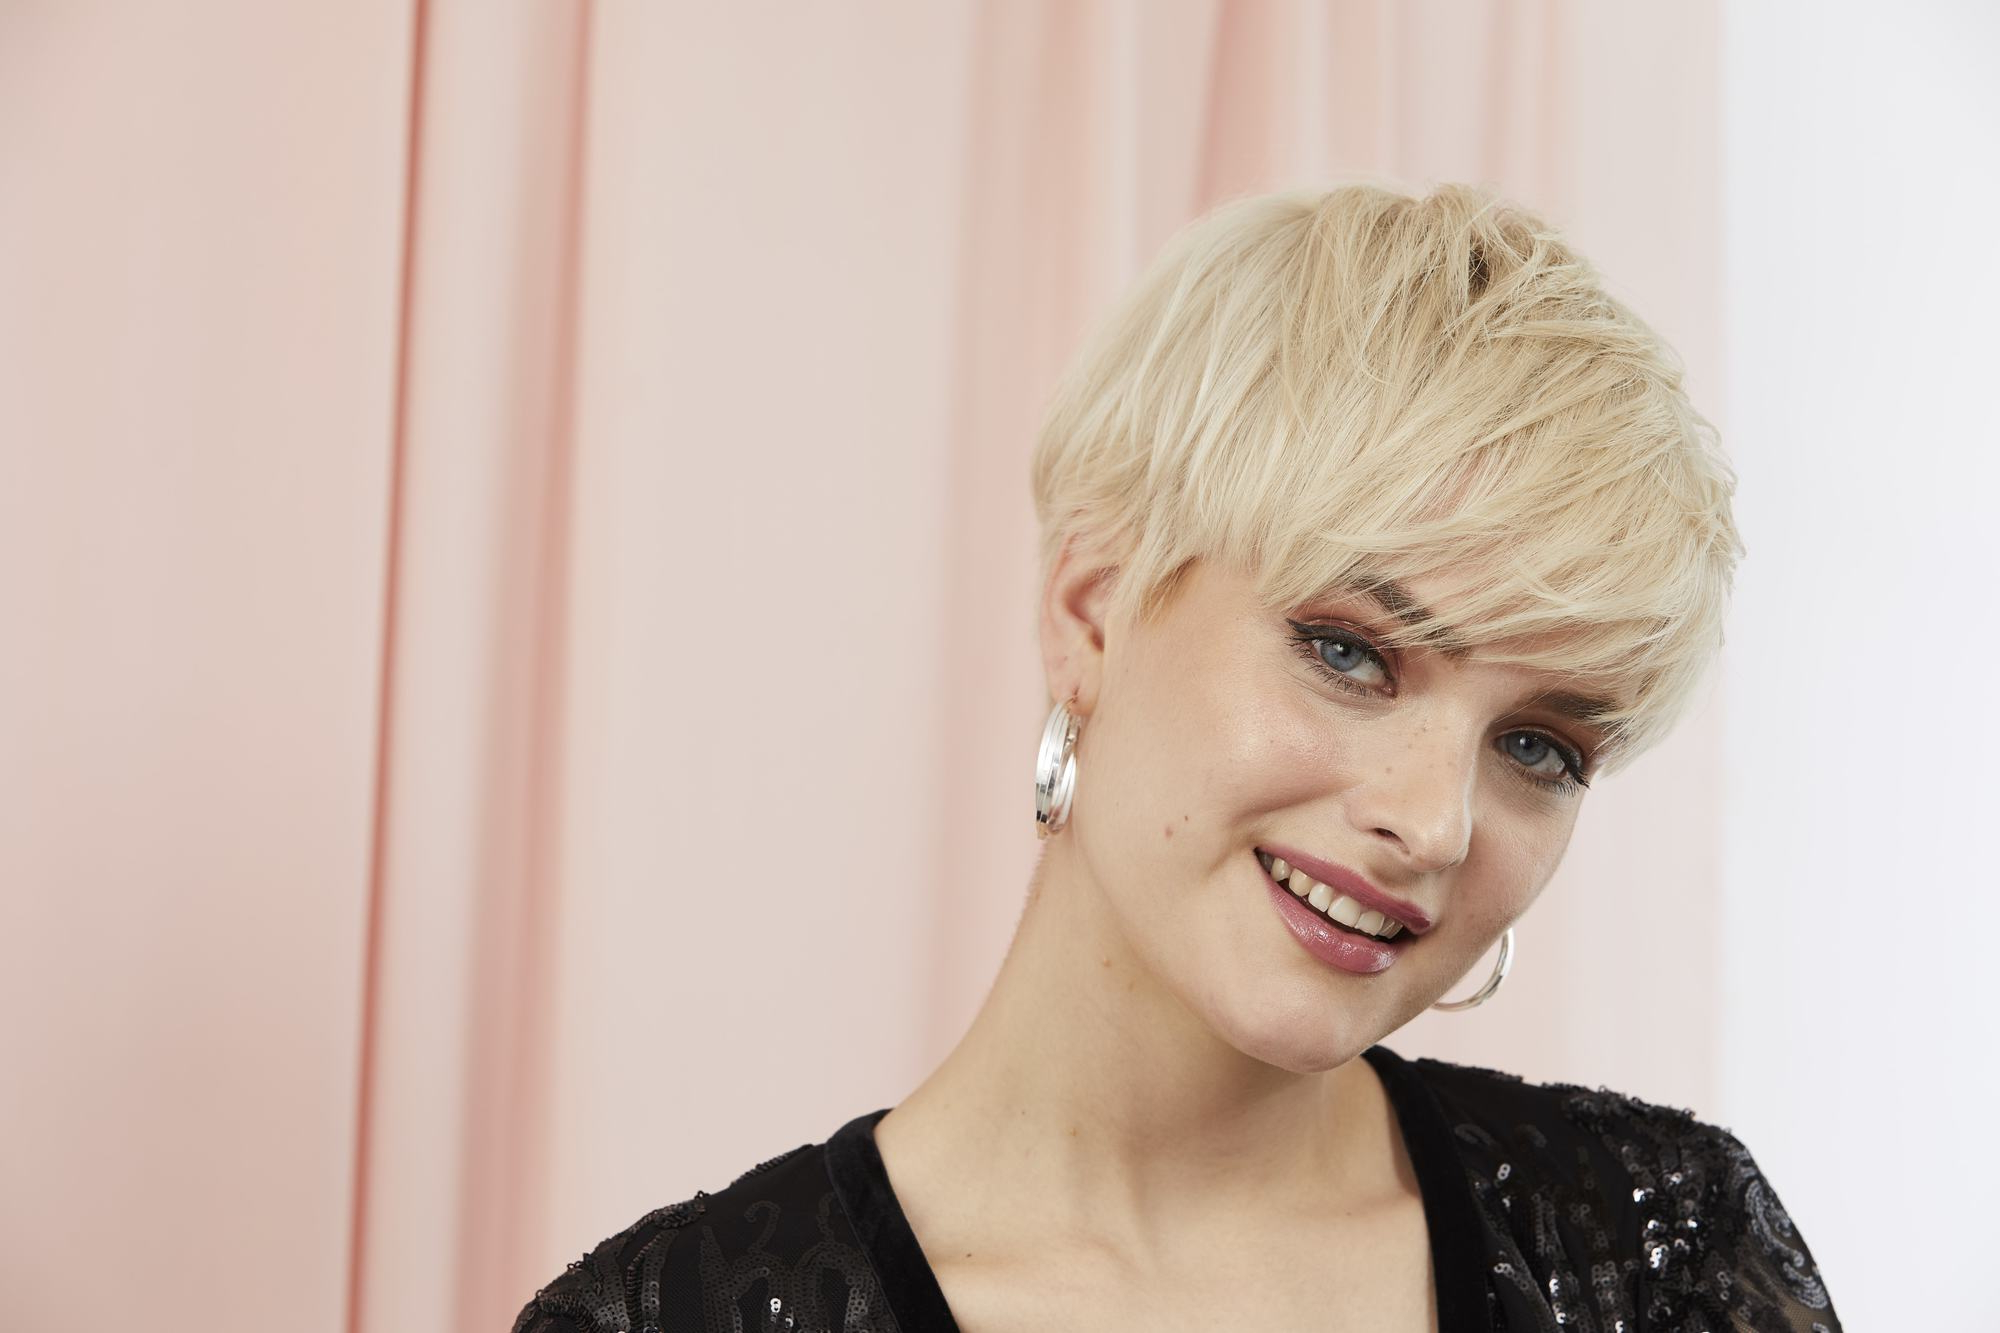 35 Best Pixie Cut Hairstyles For 2019 You Will Want To See Pertaining To Straight Long Shaggy Pixie Haircuts (Gallery 18 of 20)